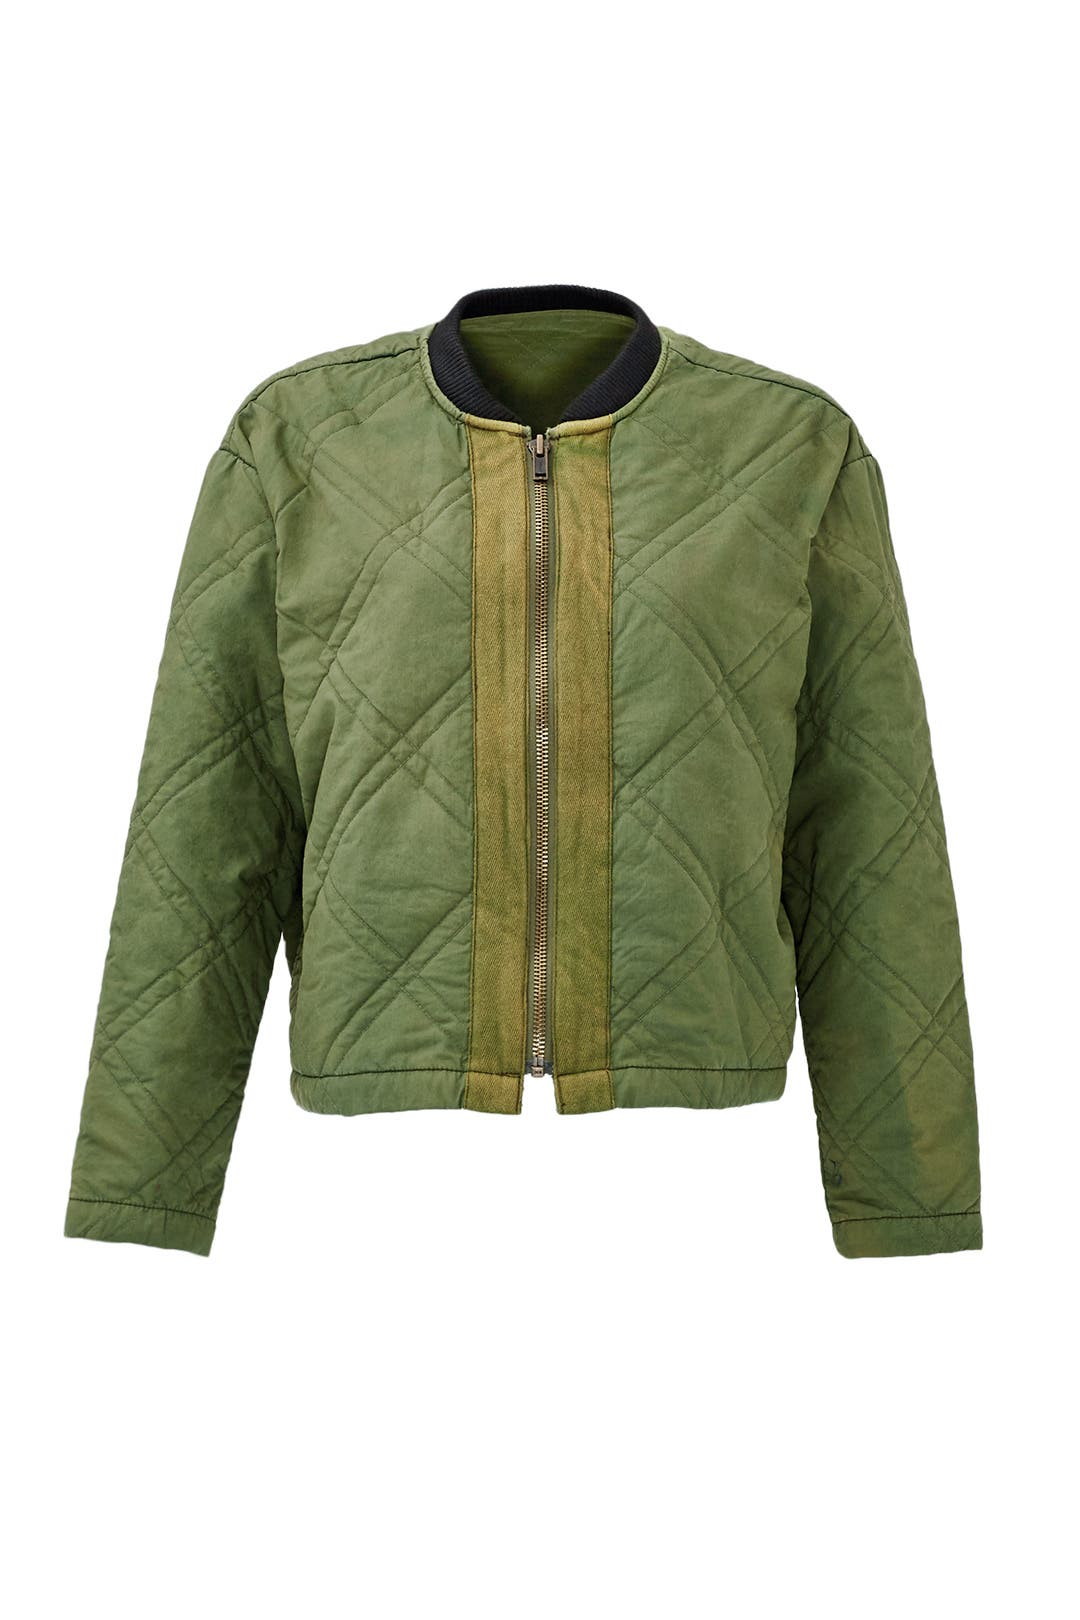 Green Quilted Bomber Jacket by Free People for $35 - $45 | Rent